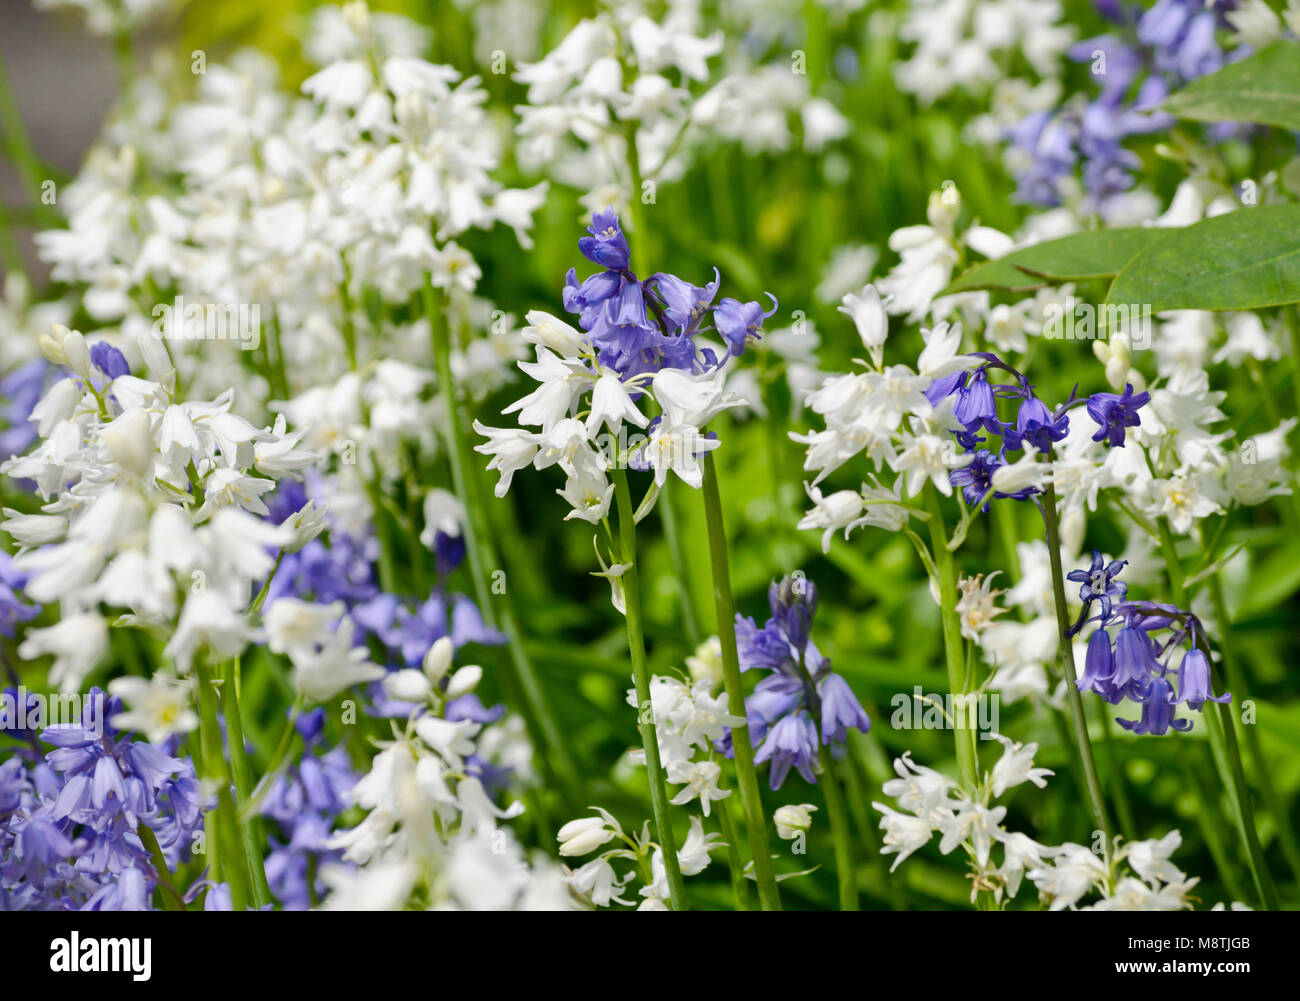 White bluebells flowers stock photos white bluebells flowers stock white and blue spanish bluebell flowers spanish bluebells hyacintholdes hispanica stock image mightylinksfo